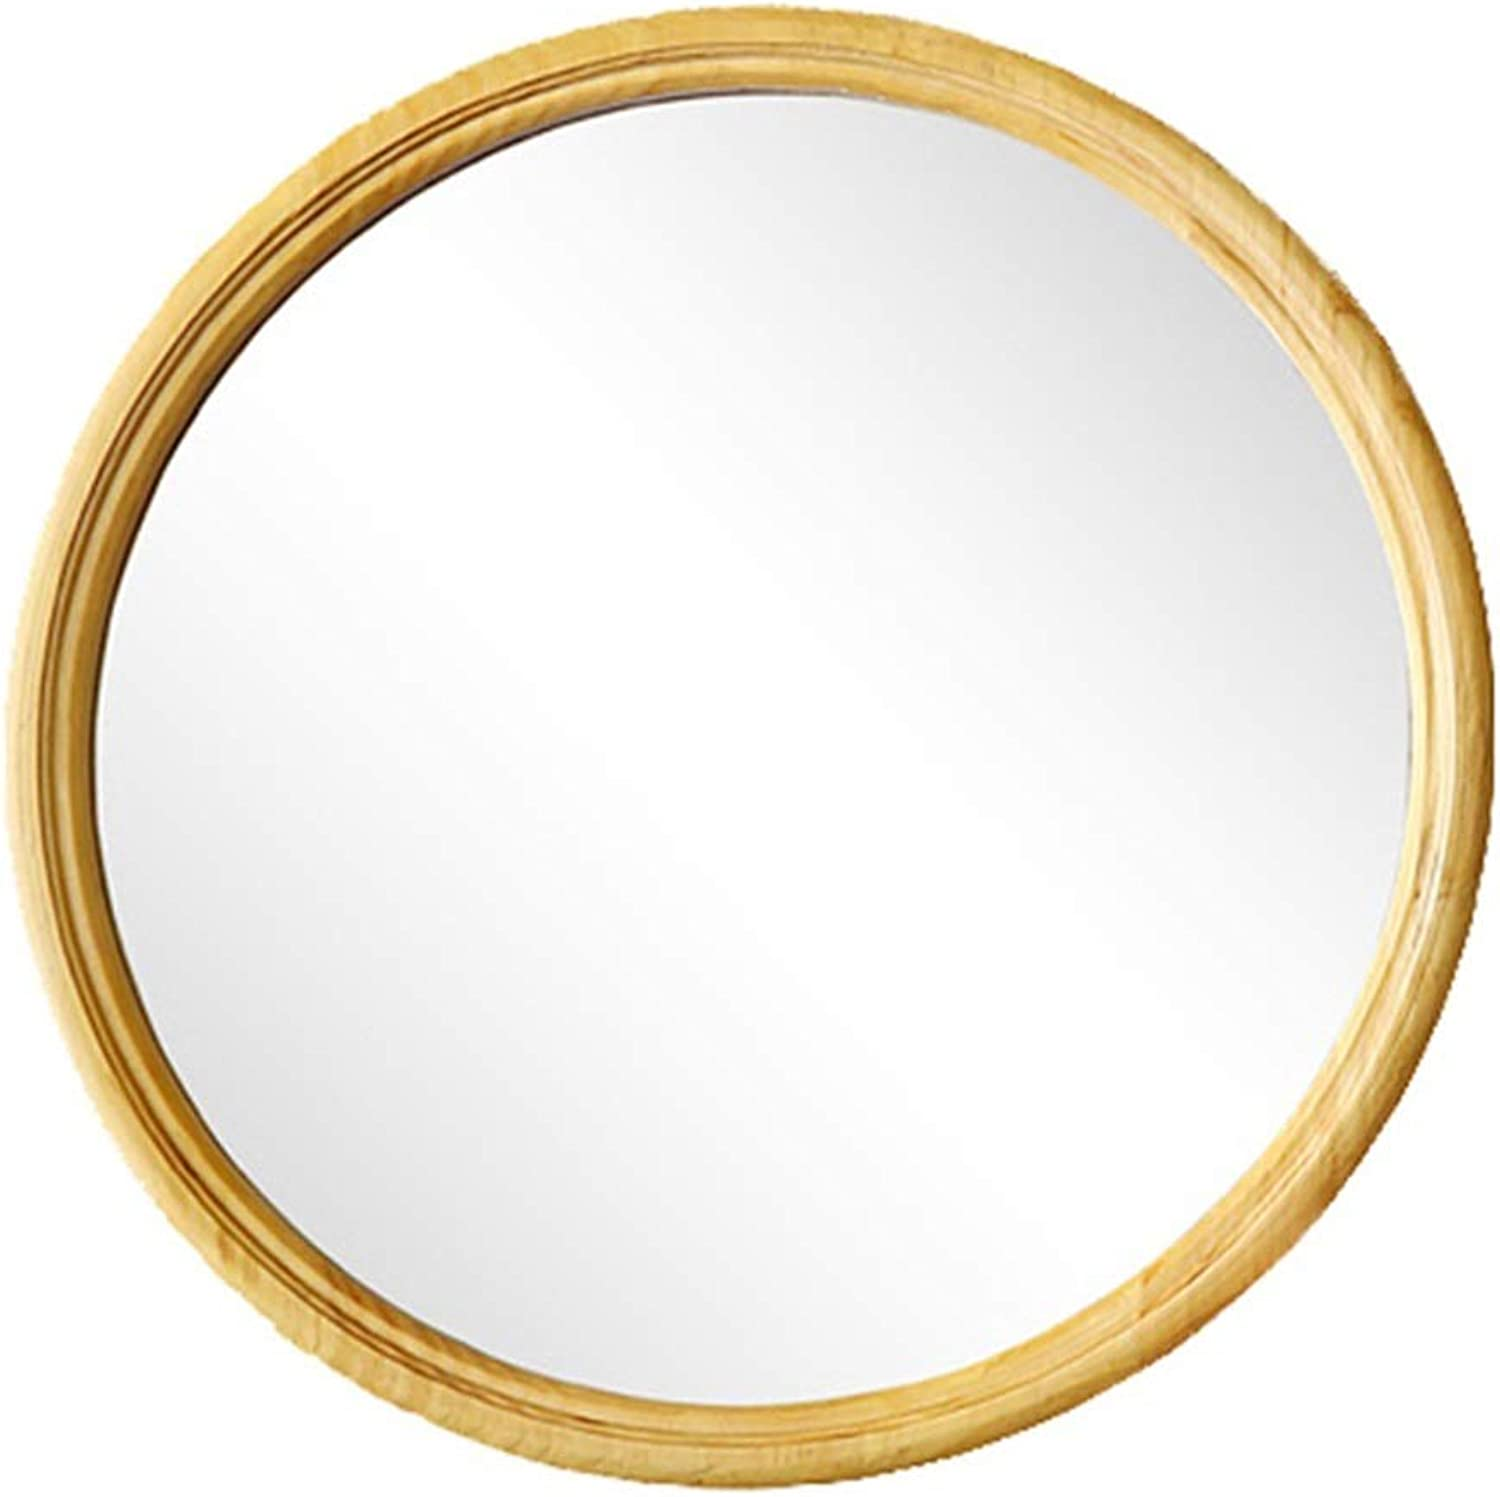 Modern Wood Circle Frame Wall Mirror   Contemporary Round Glass Panel   Vanity, Bedroom, or Bathroom   Hanging(30cm,40cm,50cm Diameter)